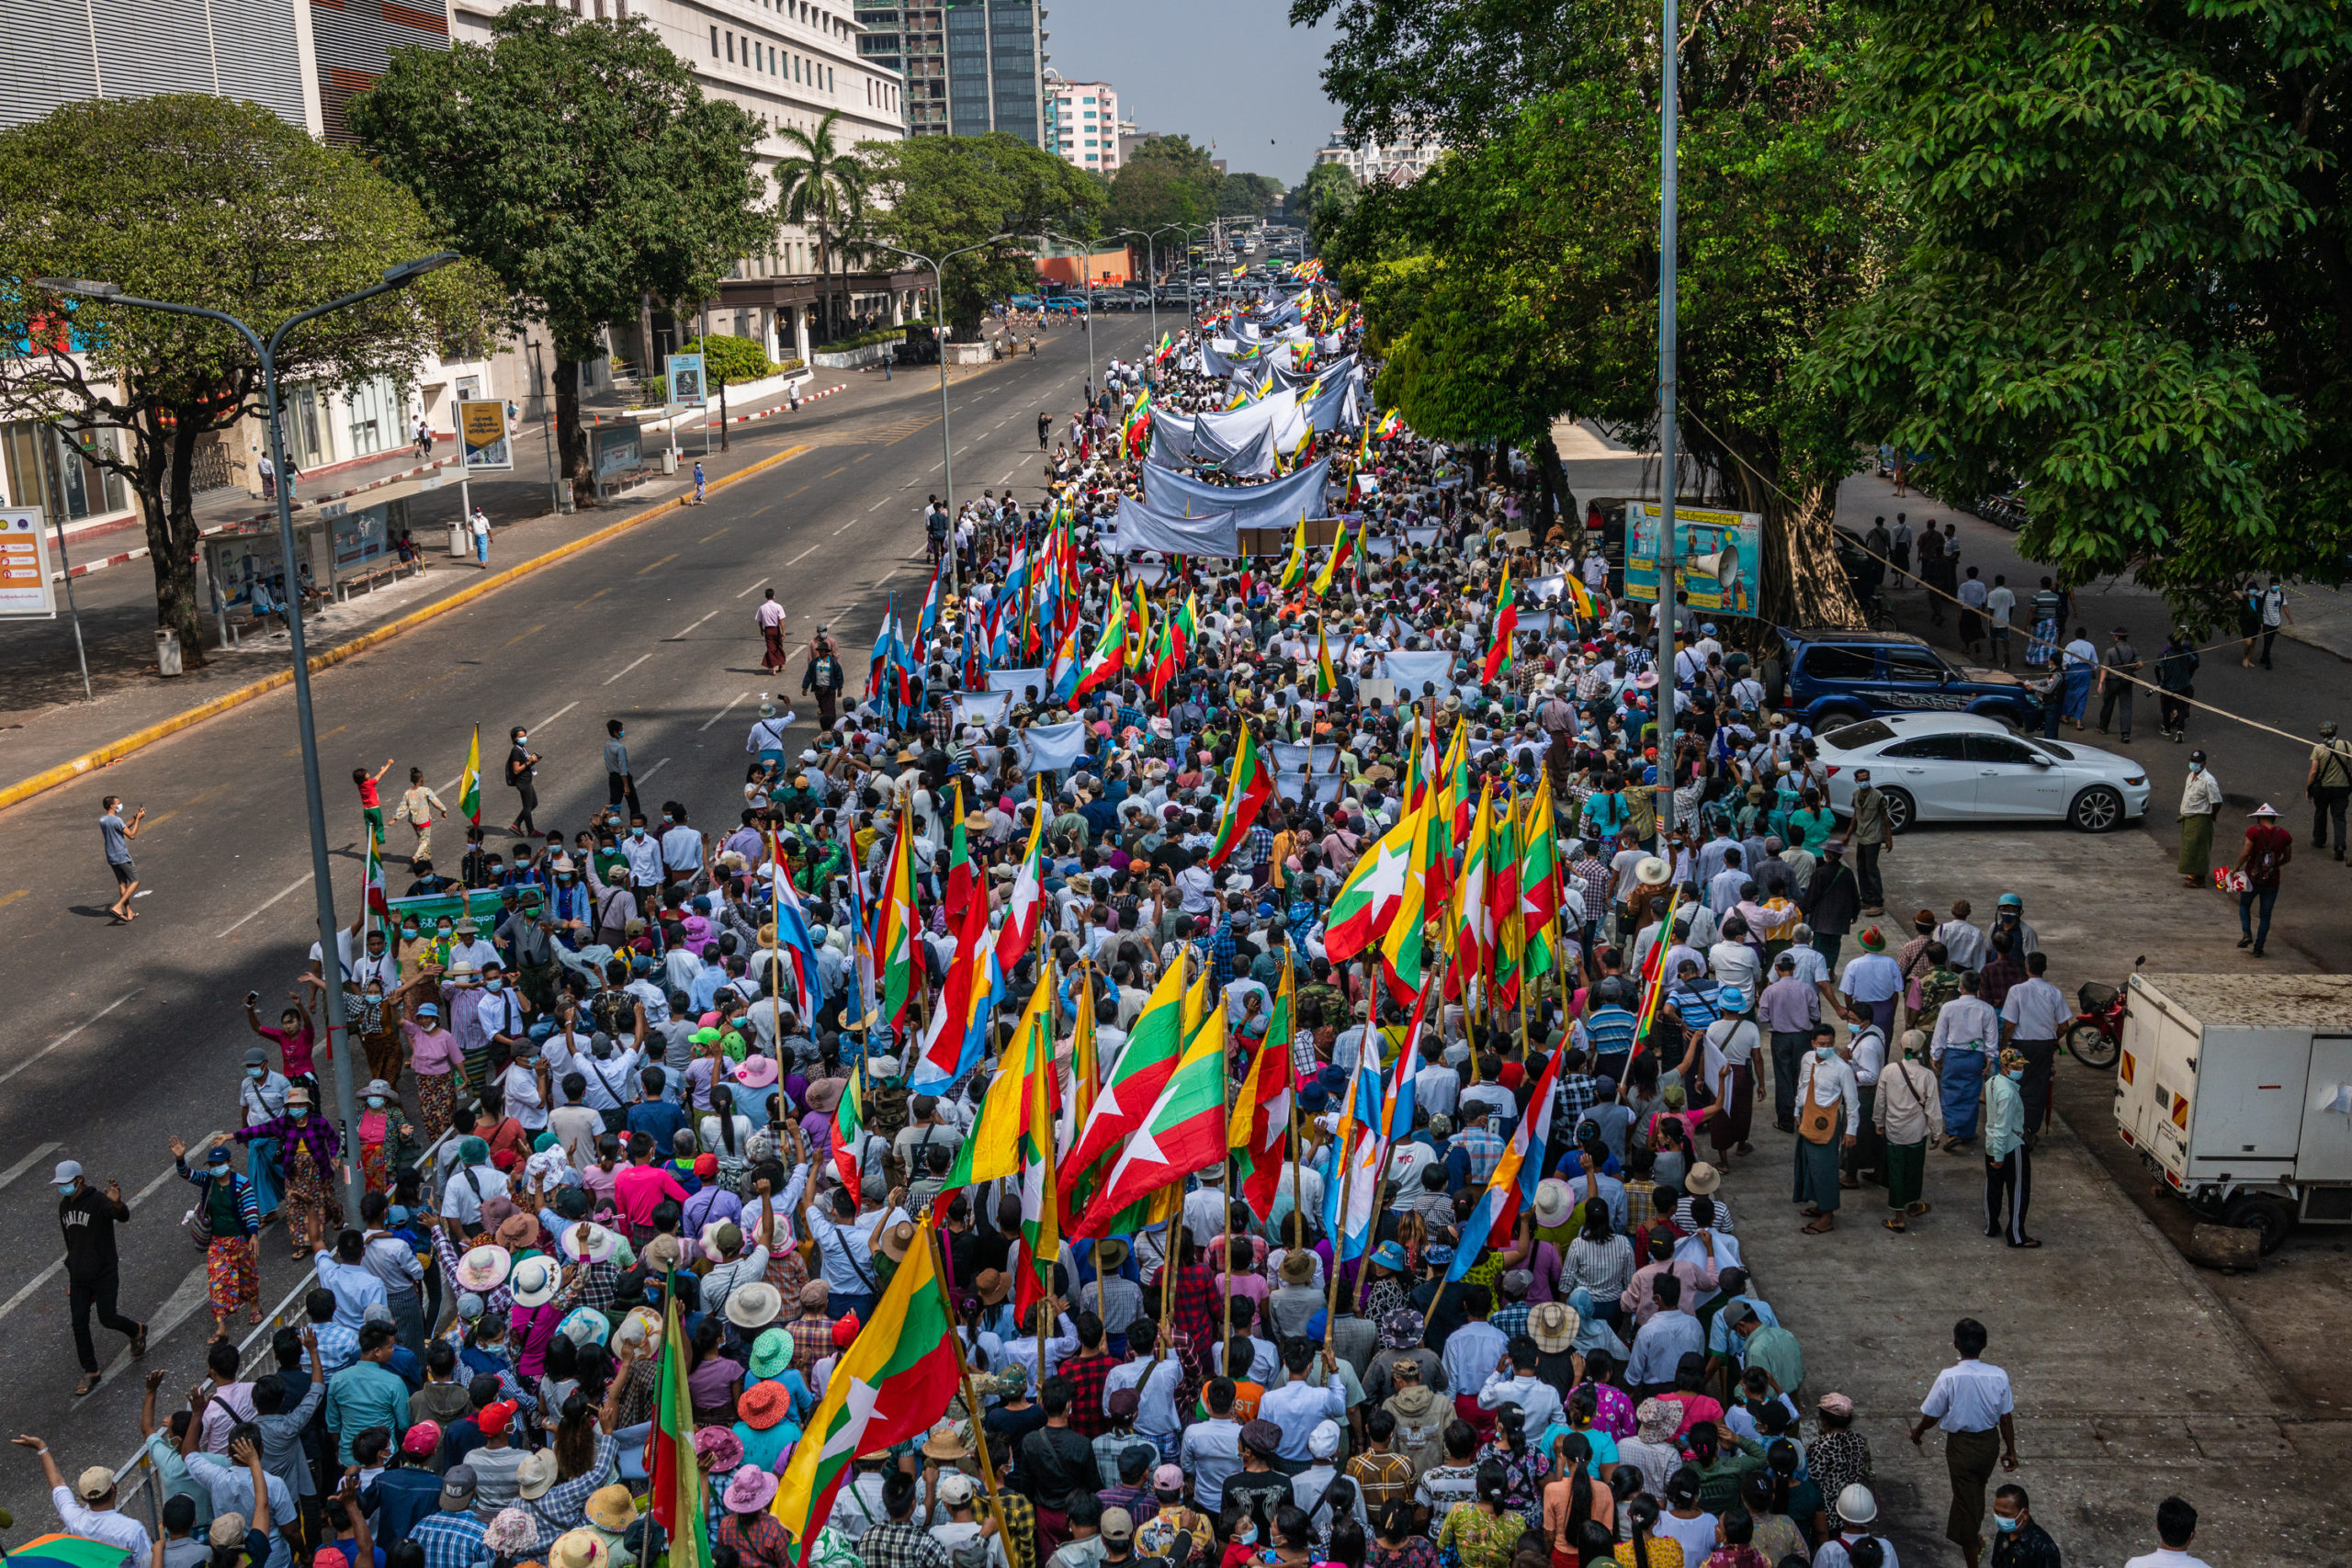 Pro-military supporters march on February 25, 2021 in Yangon, Myanmar. Supporters of the military junta that staged a coup against Aung San Suu Kyi's National League for Democracy (NLD) government marched in Yangon on Thursday. (Hkun Lat/Getty Images)